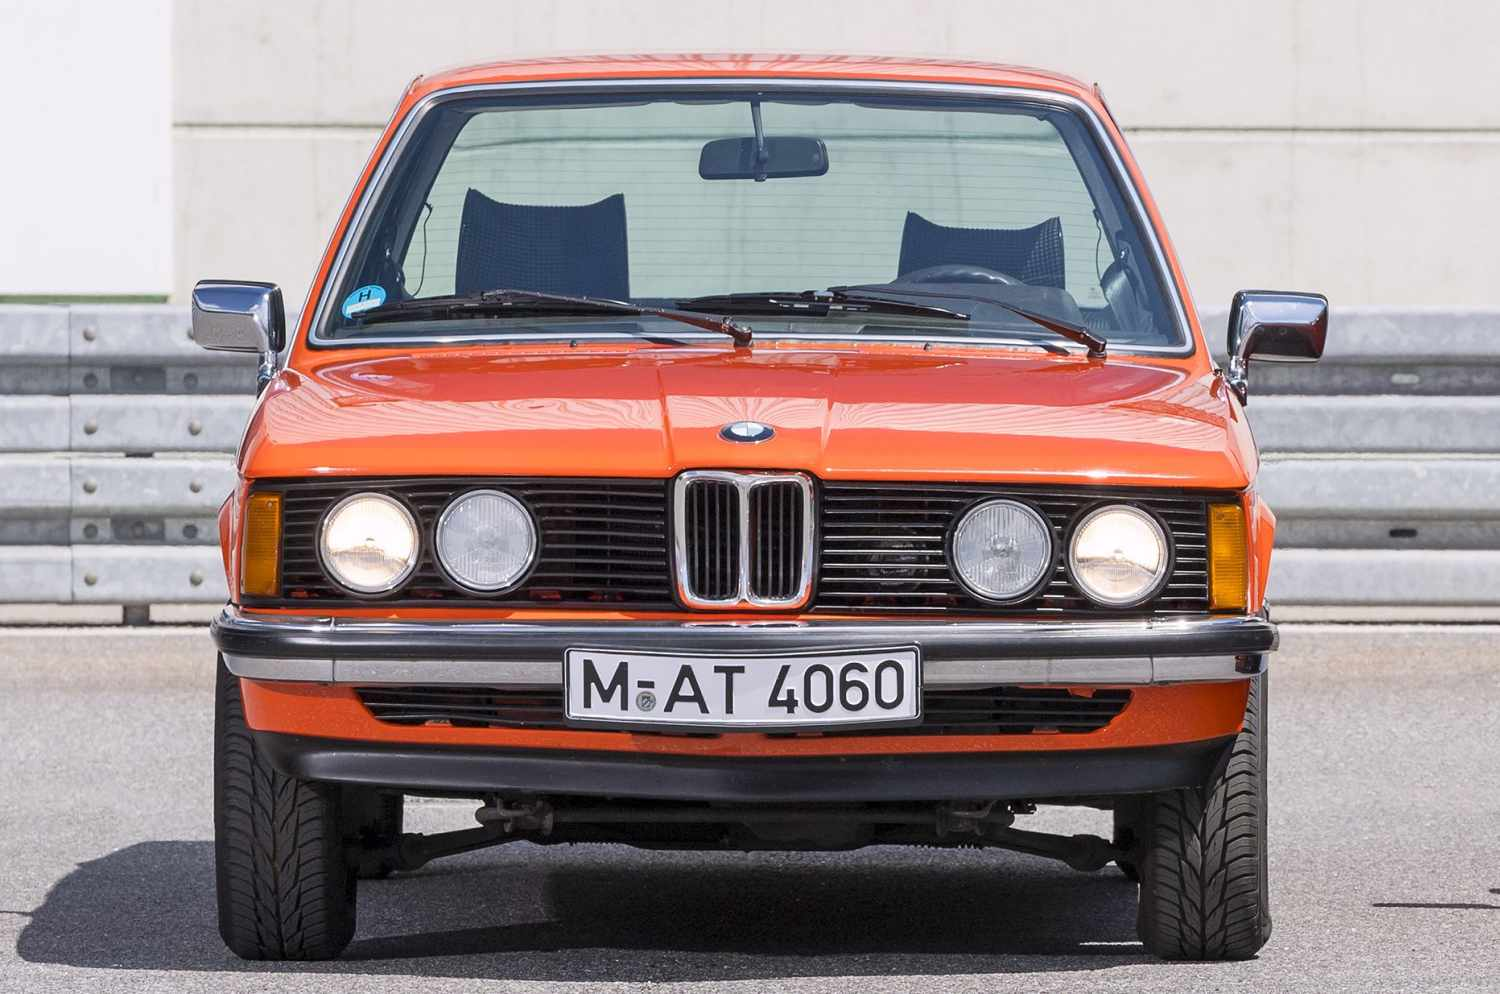 Bmw 316 E21 5 Man 1978 1979 Specs Speed Power Carbon Dioxide Emissions Fuel Economy